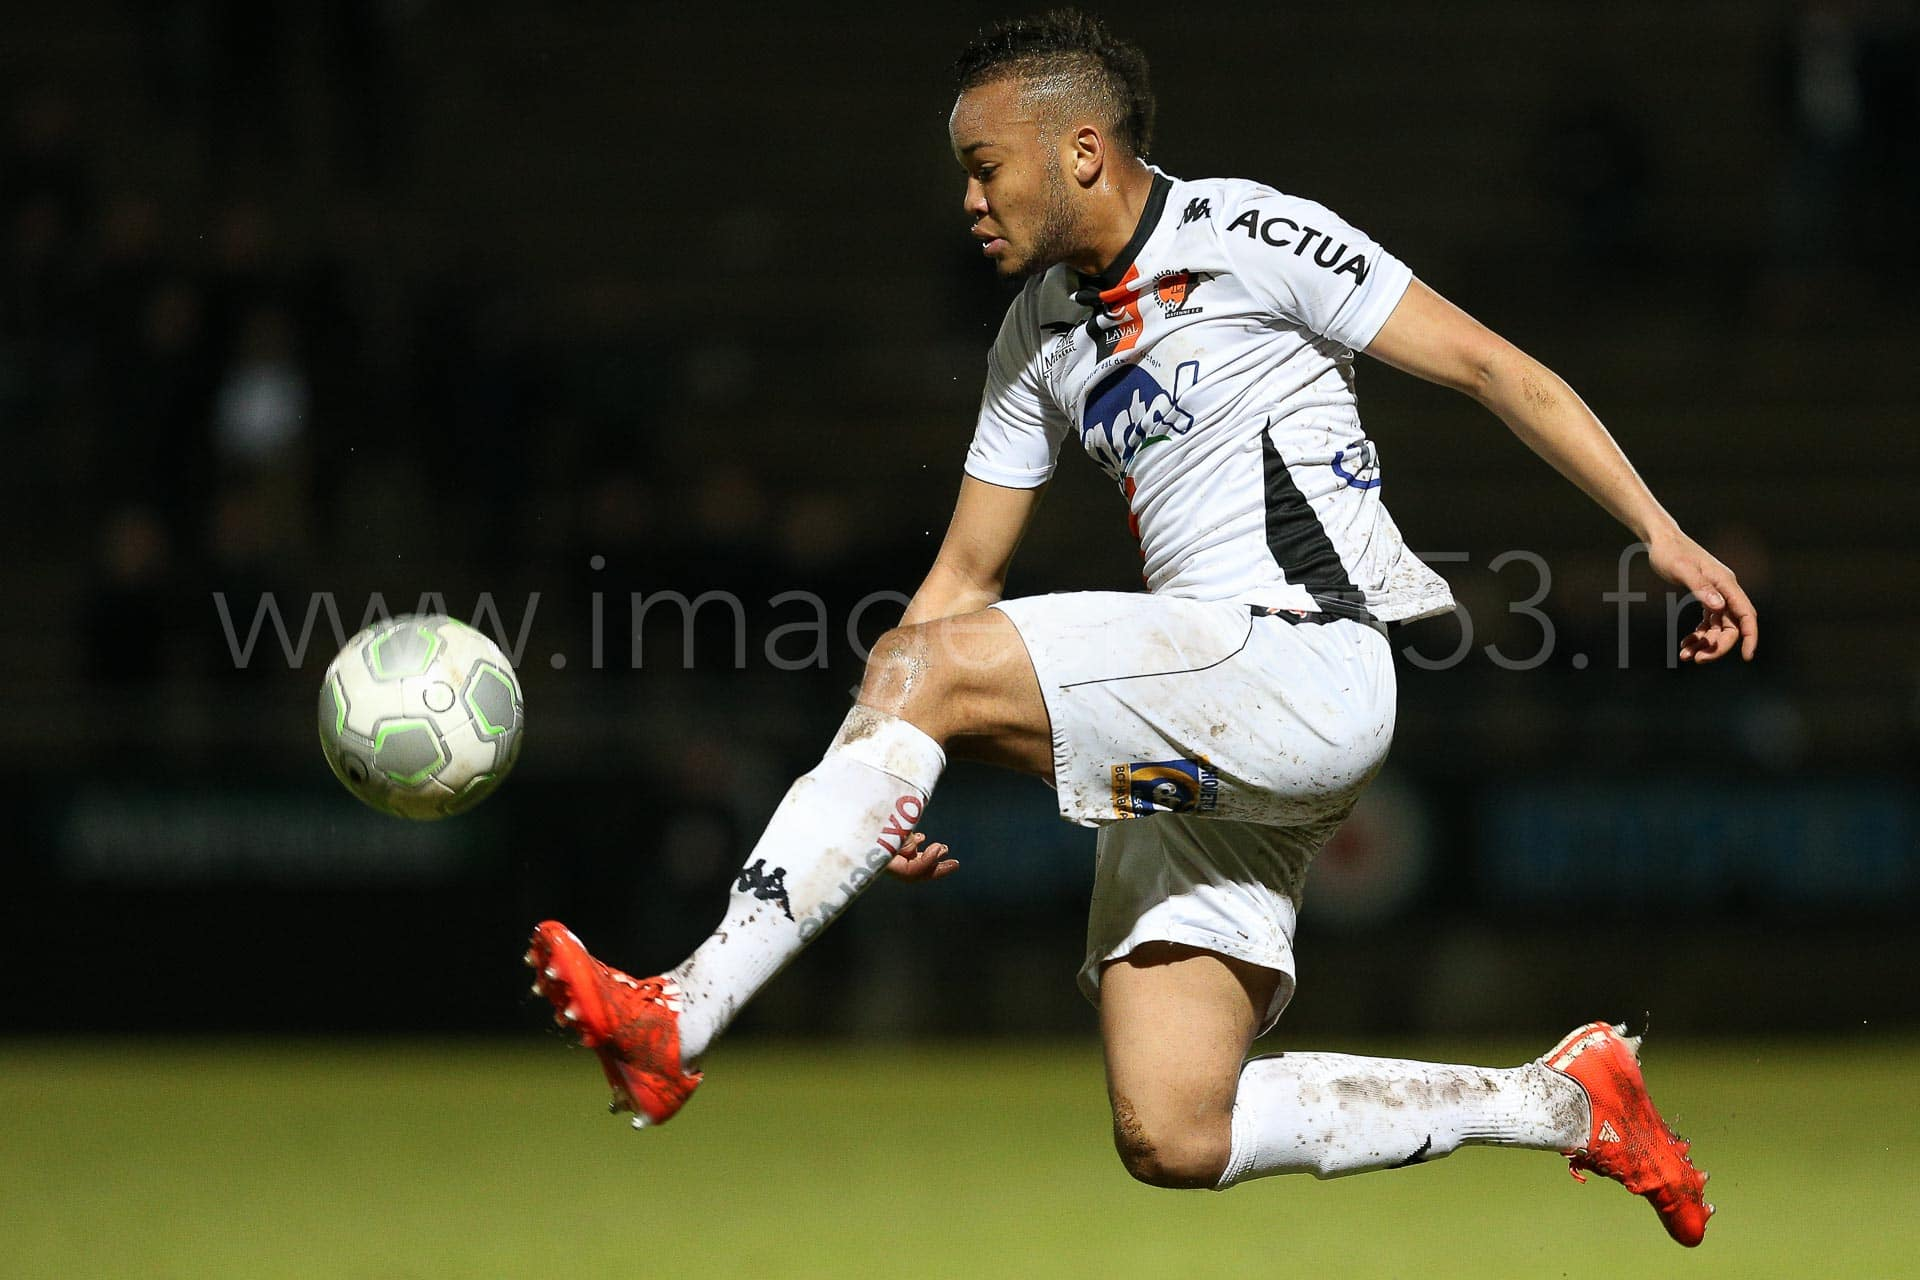 NG-Ligue2-1415-J25-Angers-Laval_5